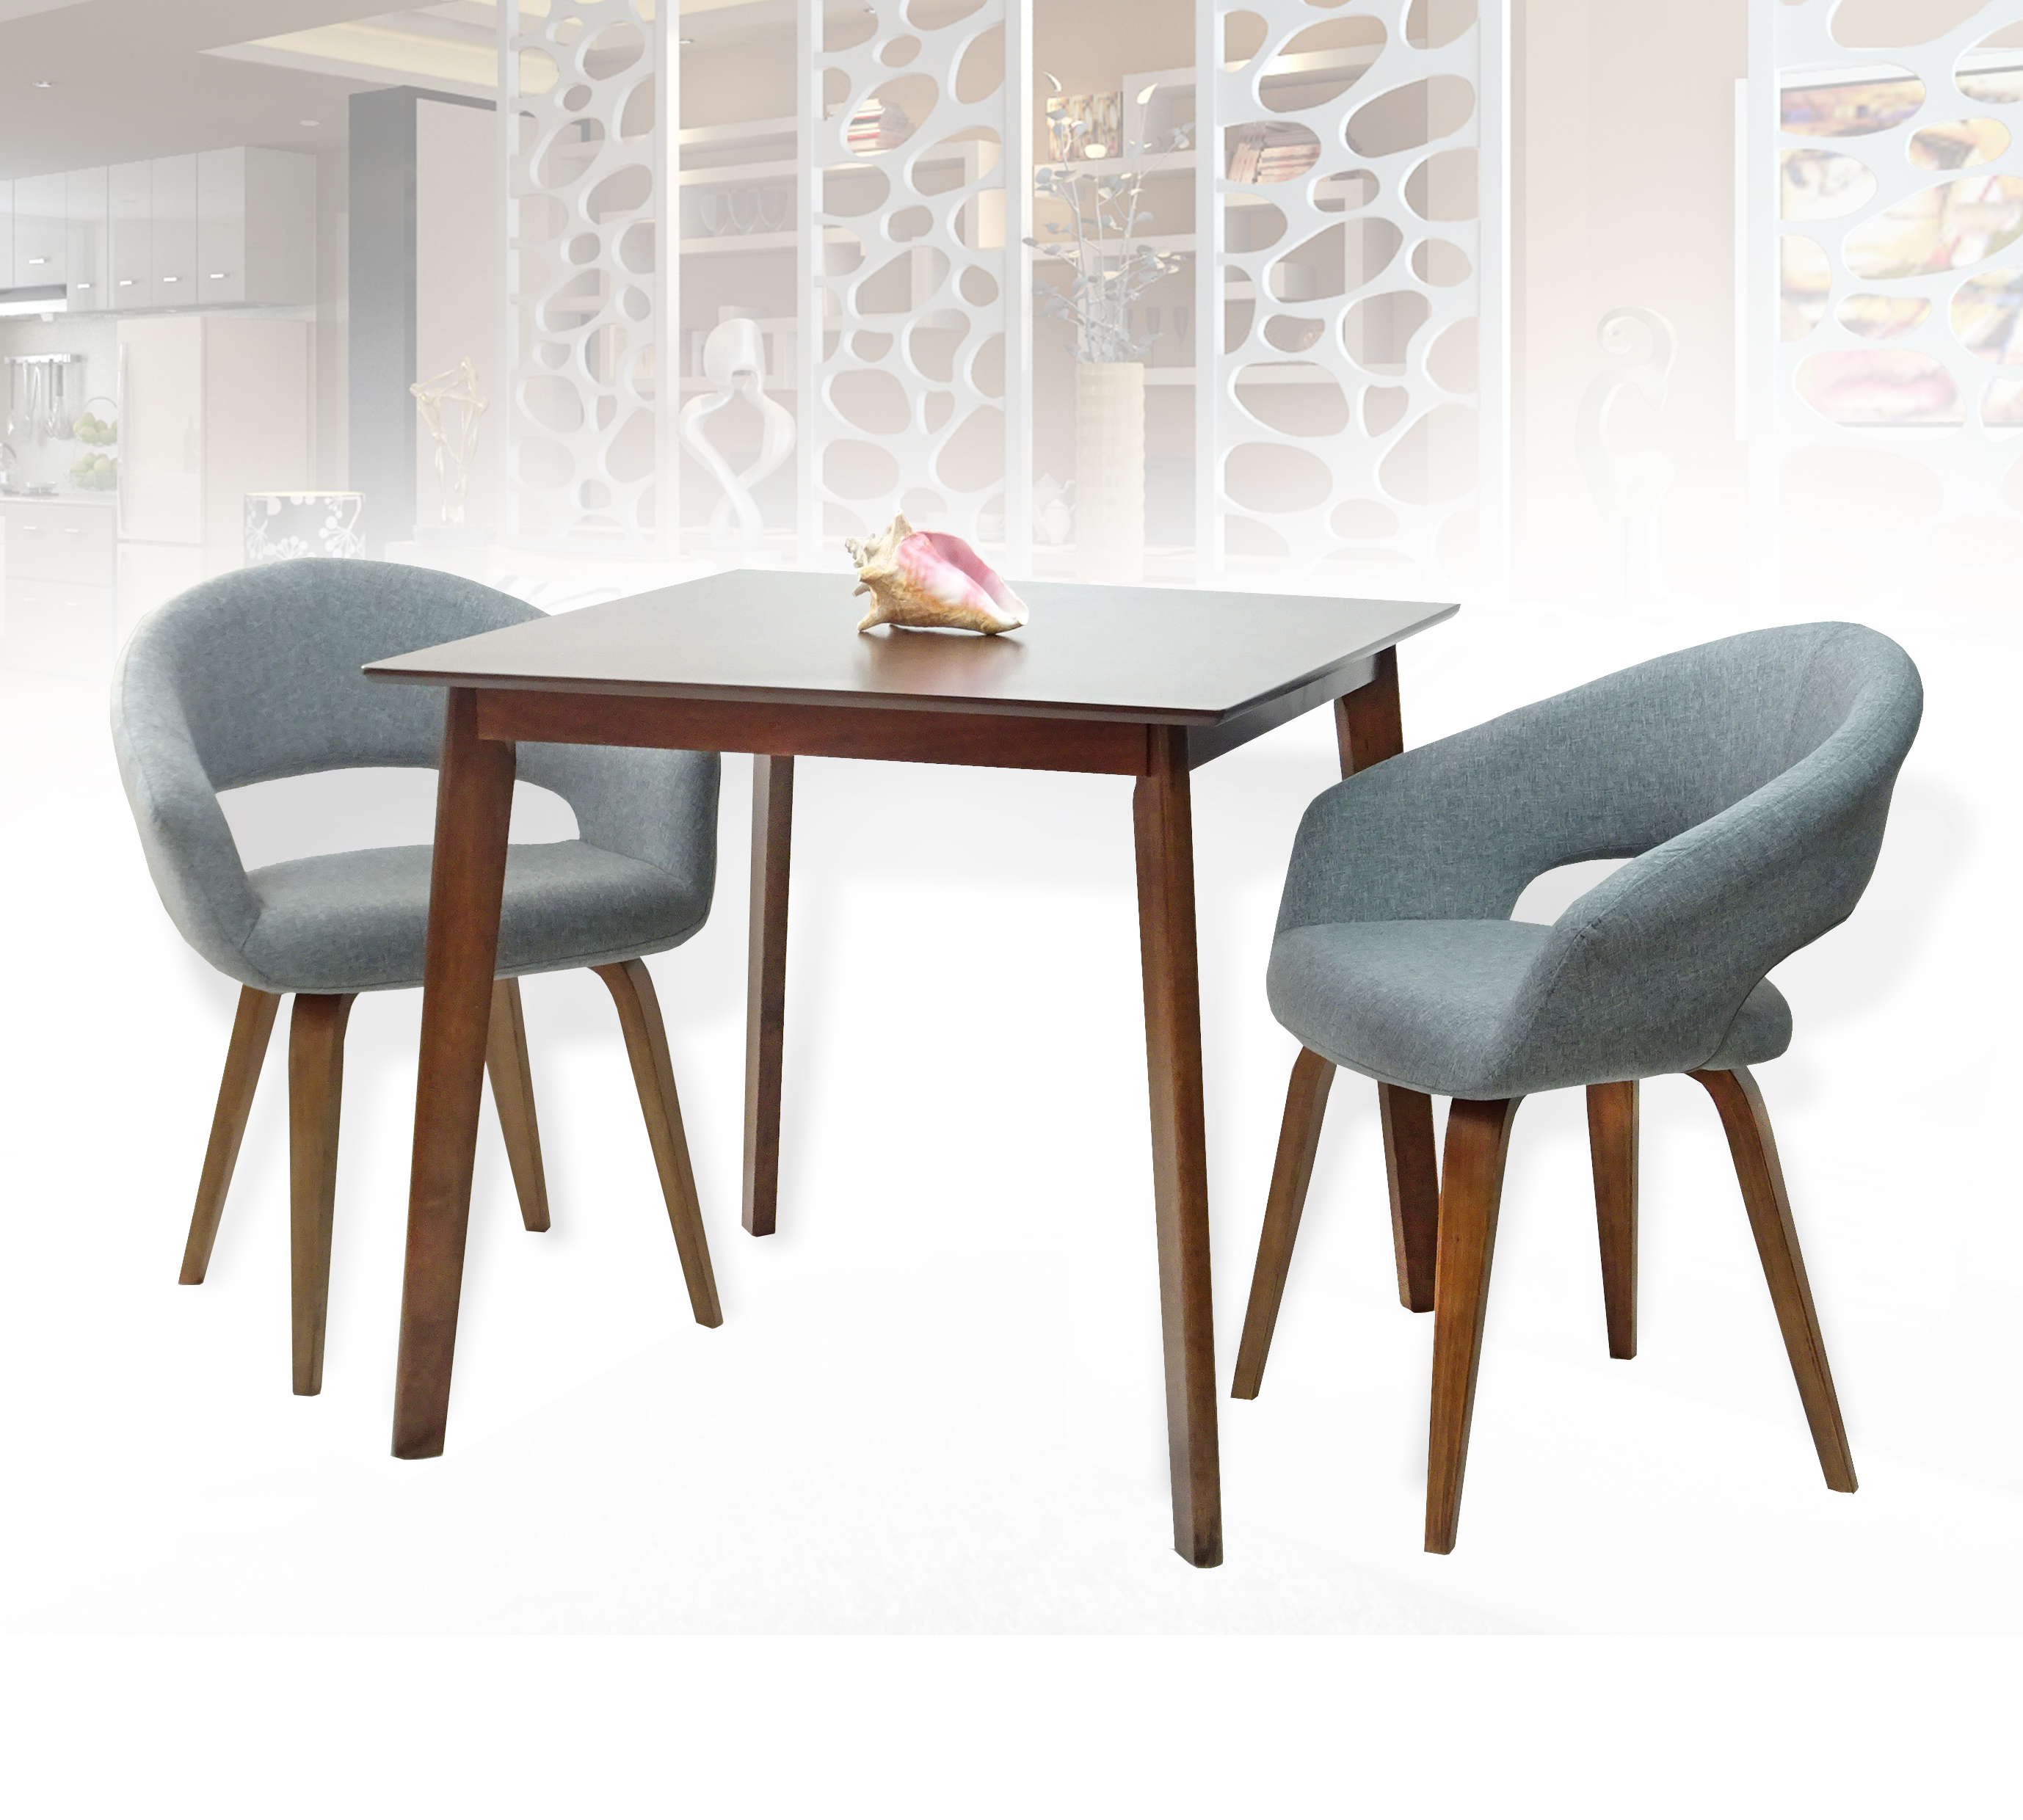 Buy dining kitchen set of 3 square wooden medium brown table with 2 lagos armchairs light gray color in usa best price free shipping rattan usa